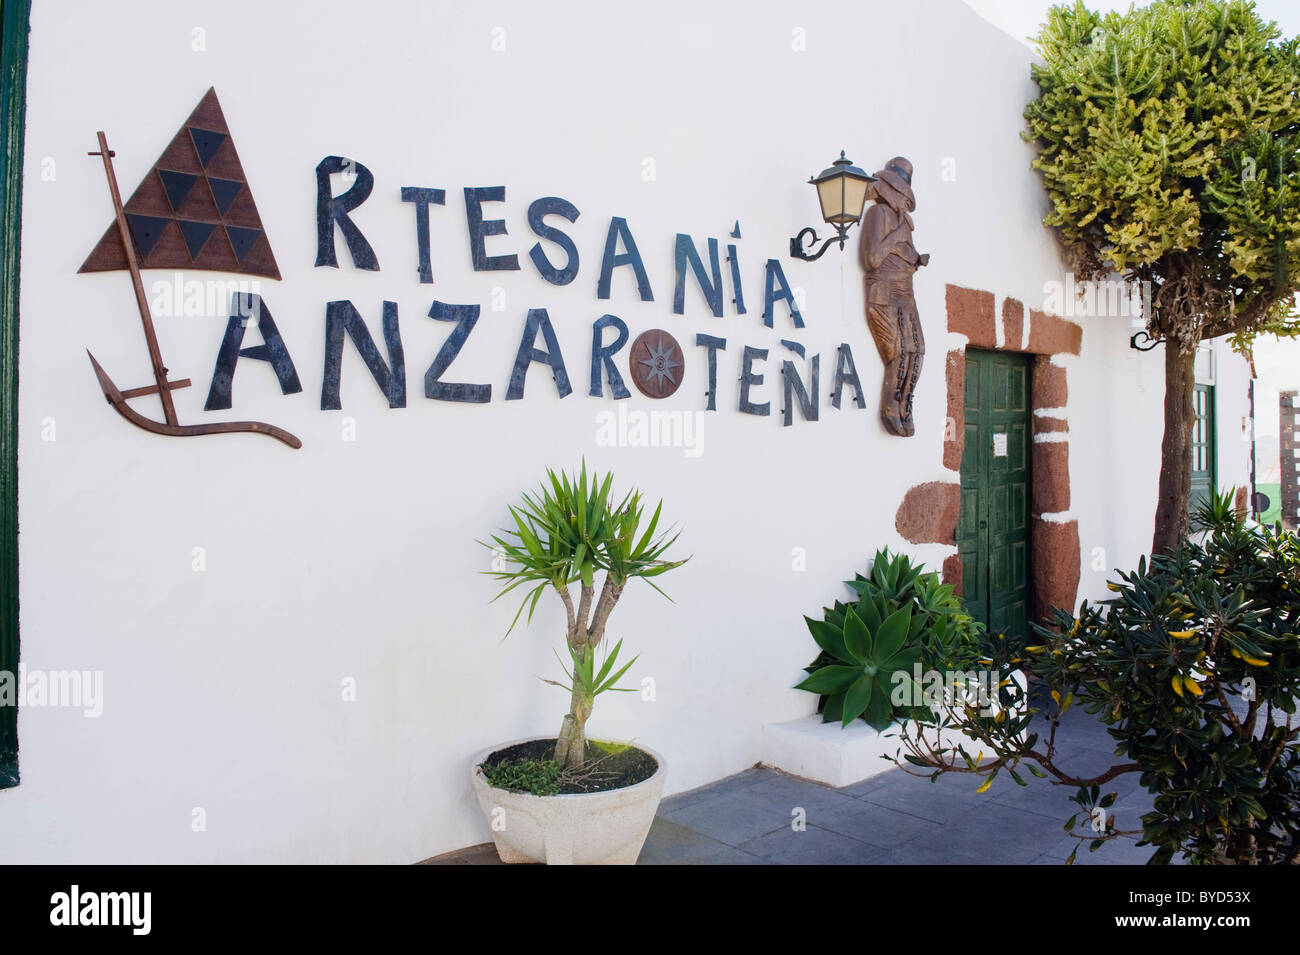 Arts & crafts store in a Canarian house, Teguise, Lanzarote, Canary Islands, Spain, Europe - Stock Image